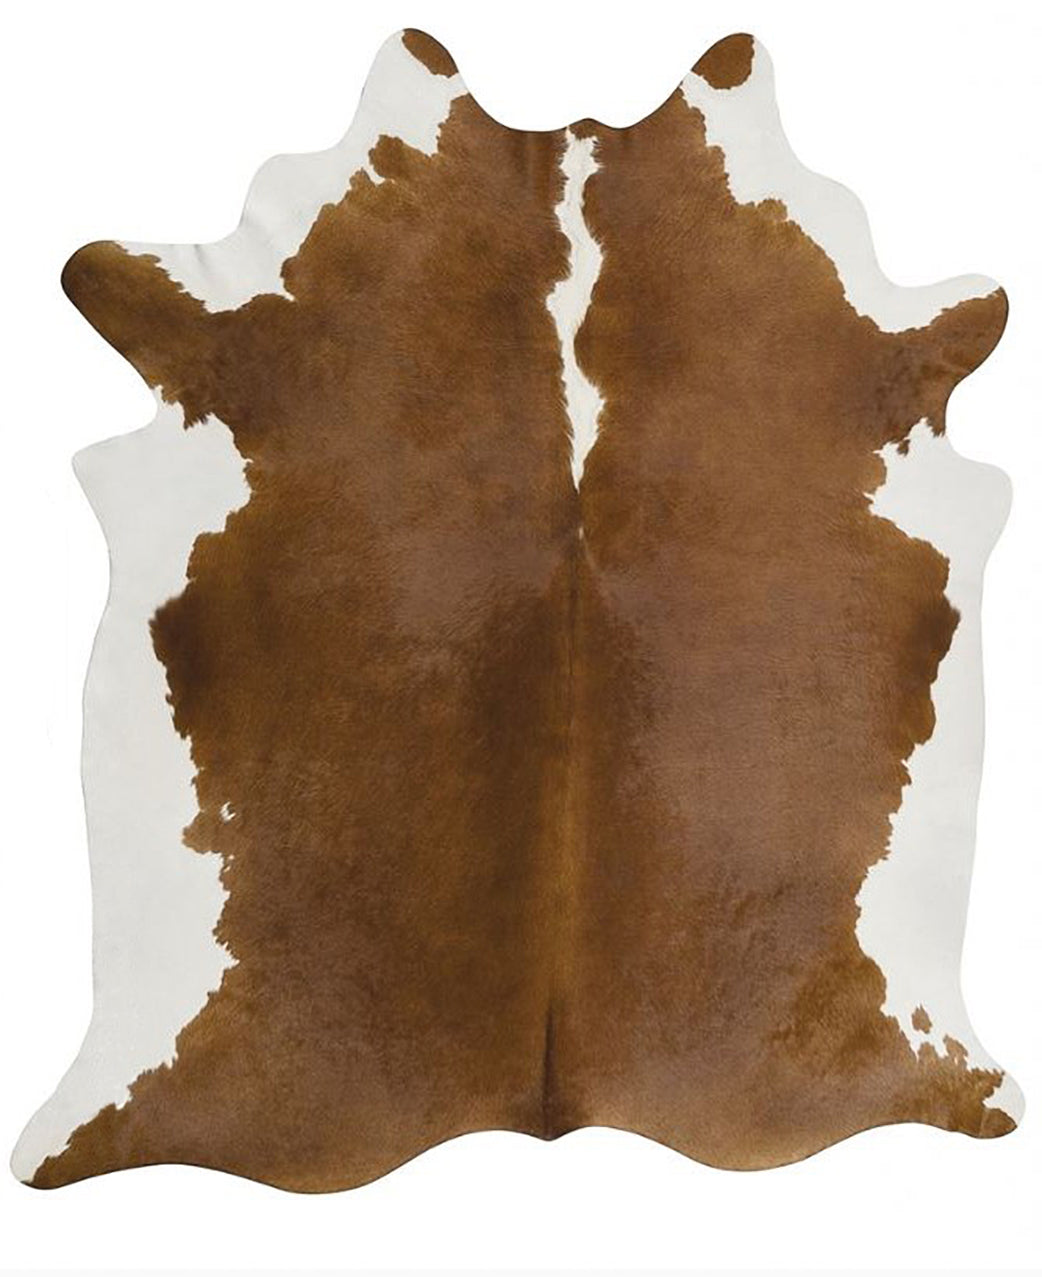 Hereford Brown Brazilian Cowhide Rug